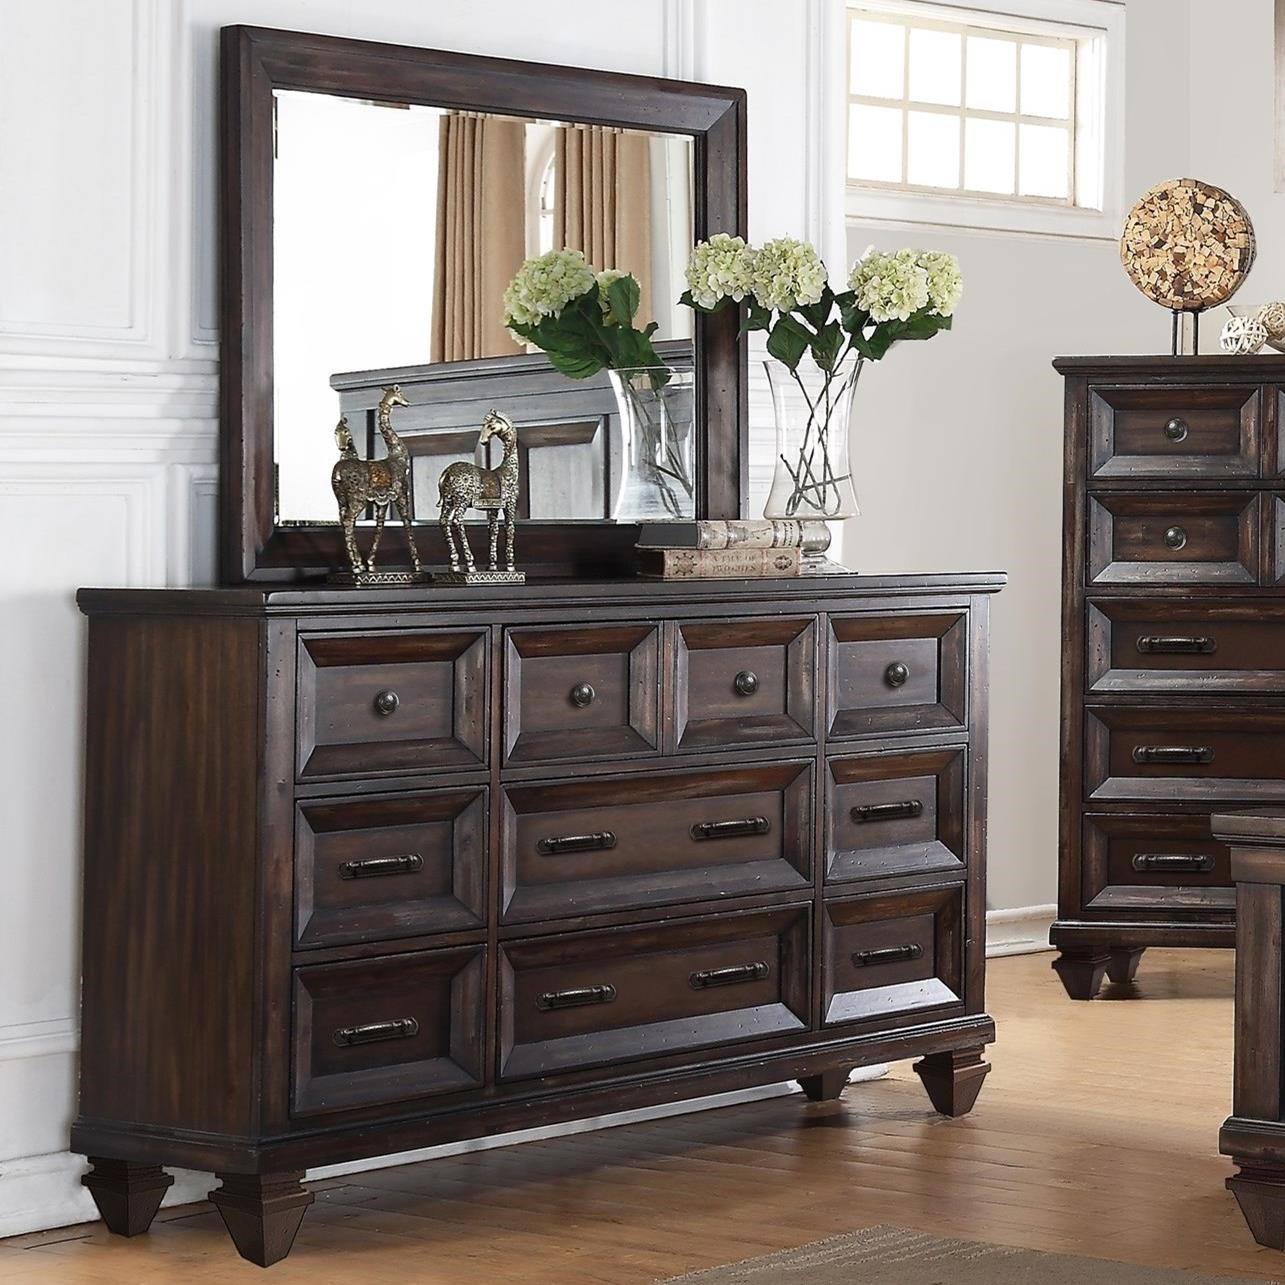 Factory Sofas Sevilla New Classic Sevilla Nine Drawer Dresser And Mirror Set